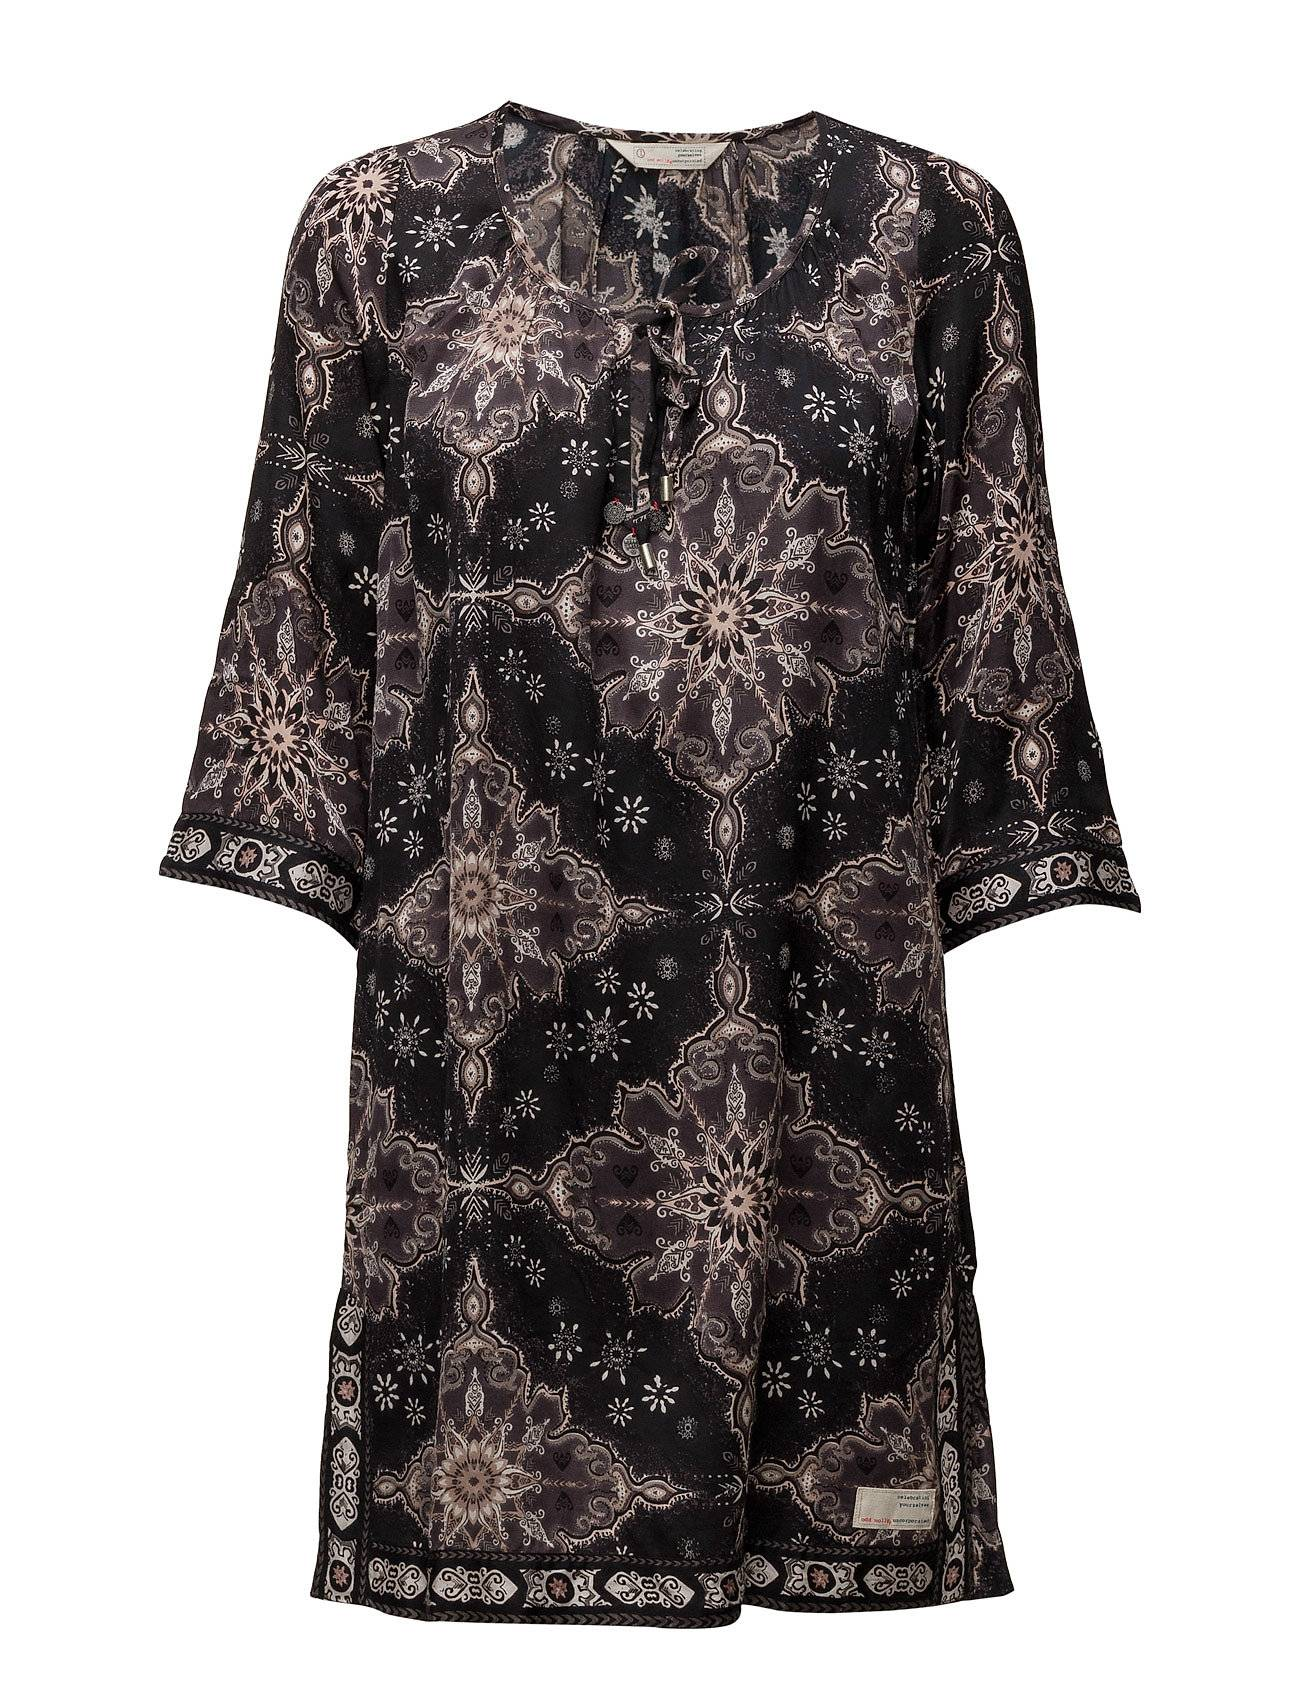 ODD MOLLY Afternoon Delight Dress